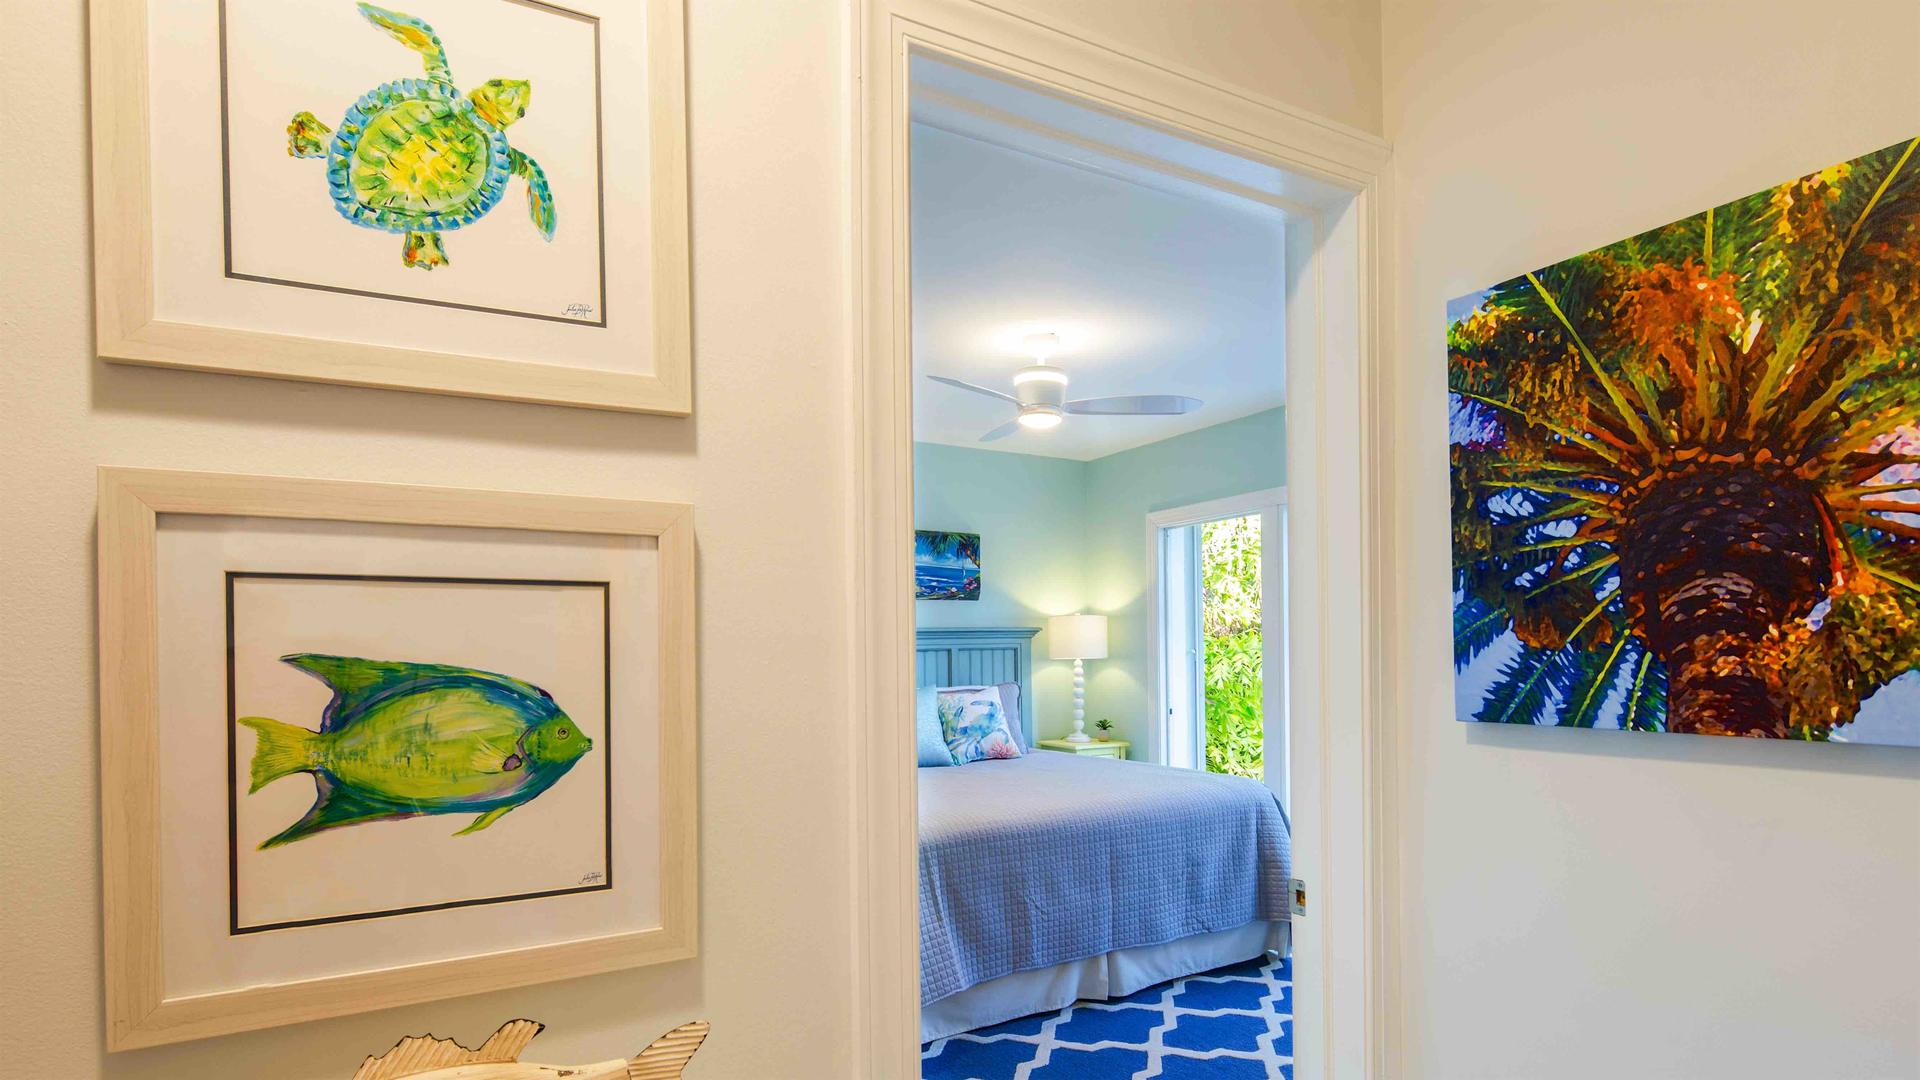 The home has been decorated in tropical colors and decor...